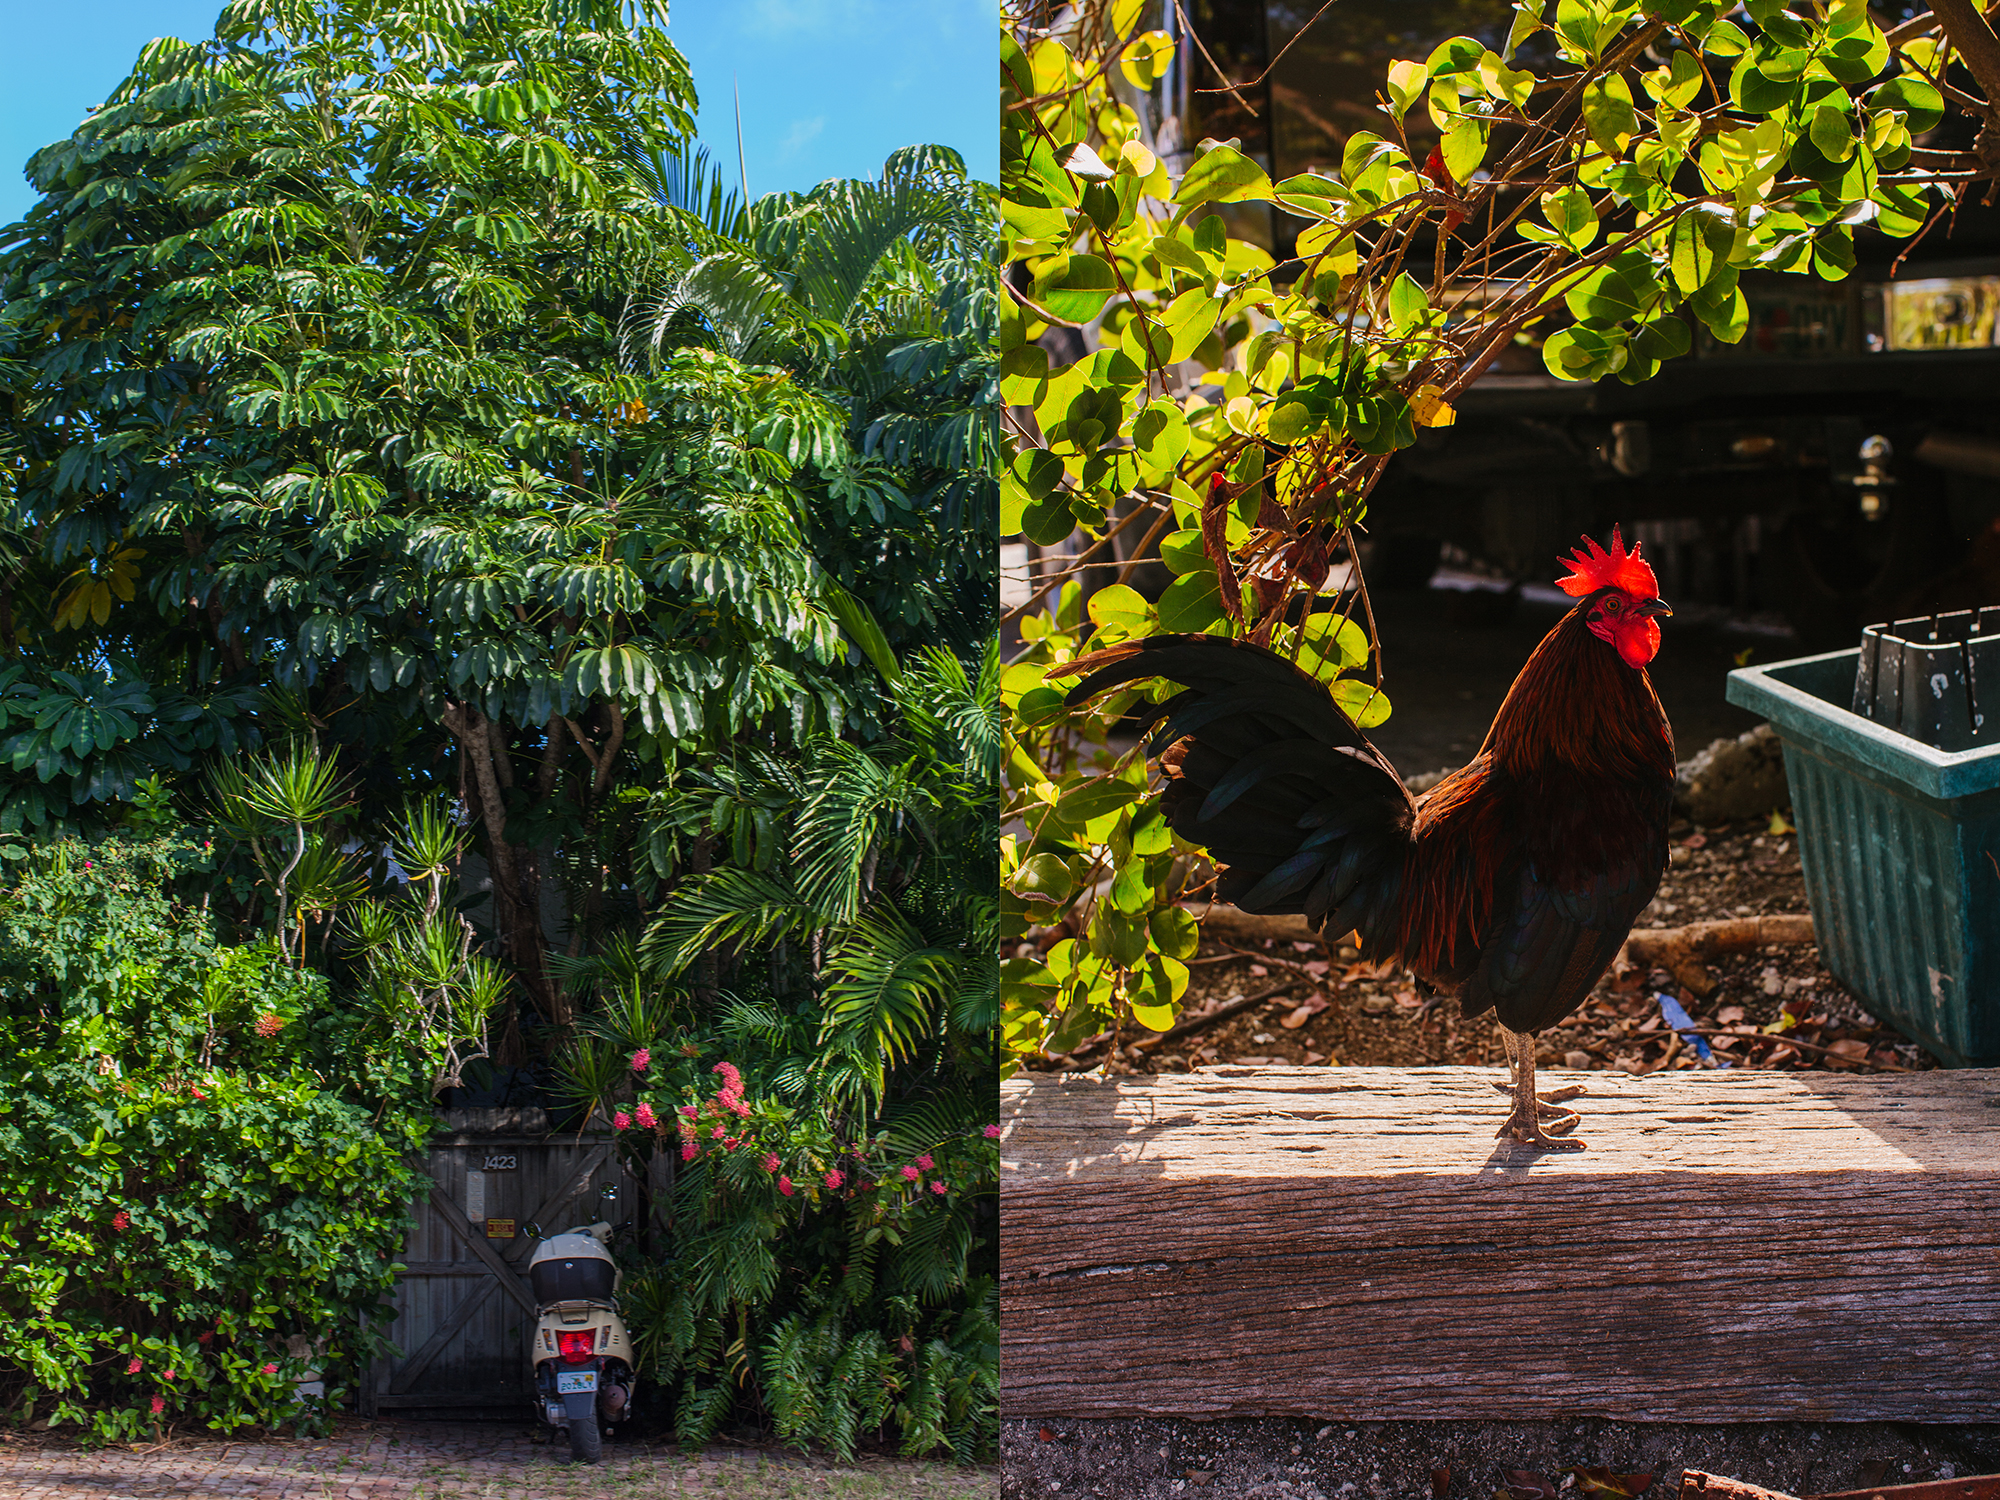 Common things that pop up on the road: Scooters and Chickens. Both equally very vocal.